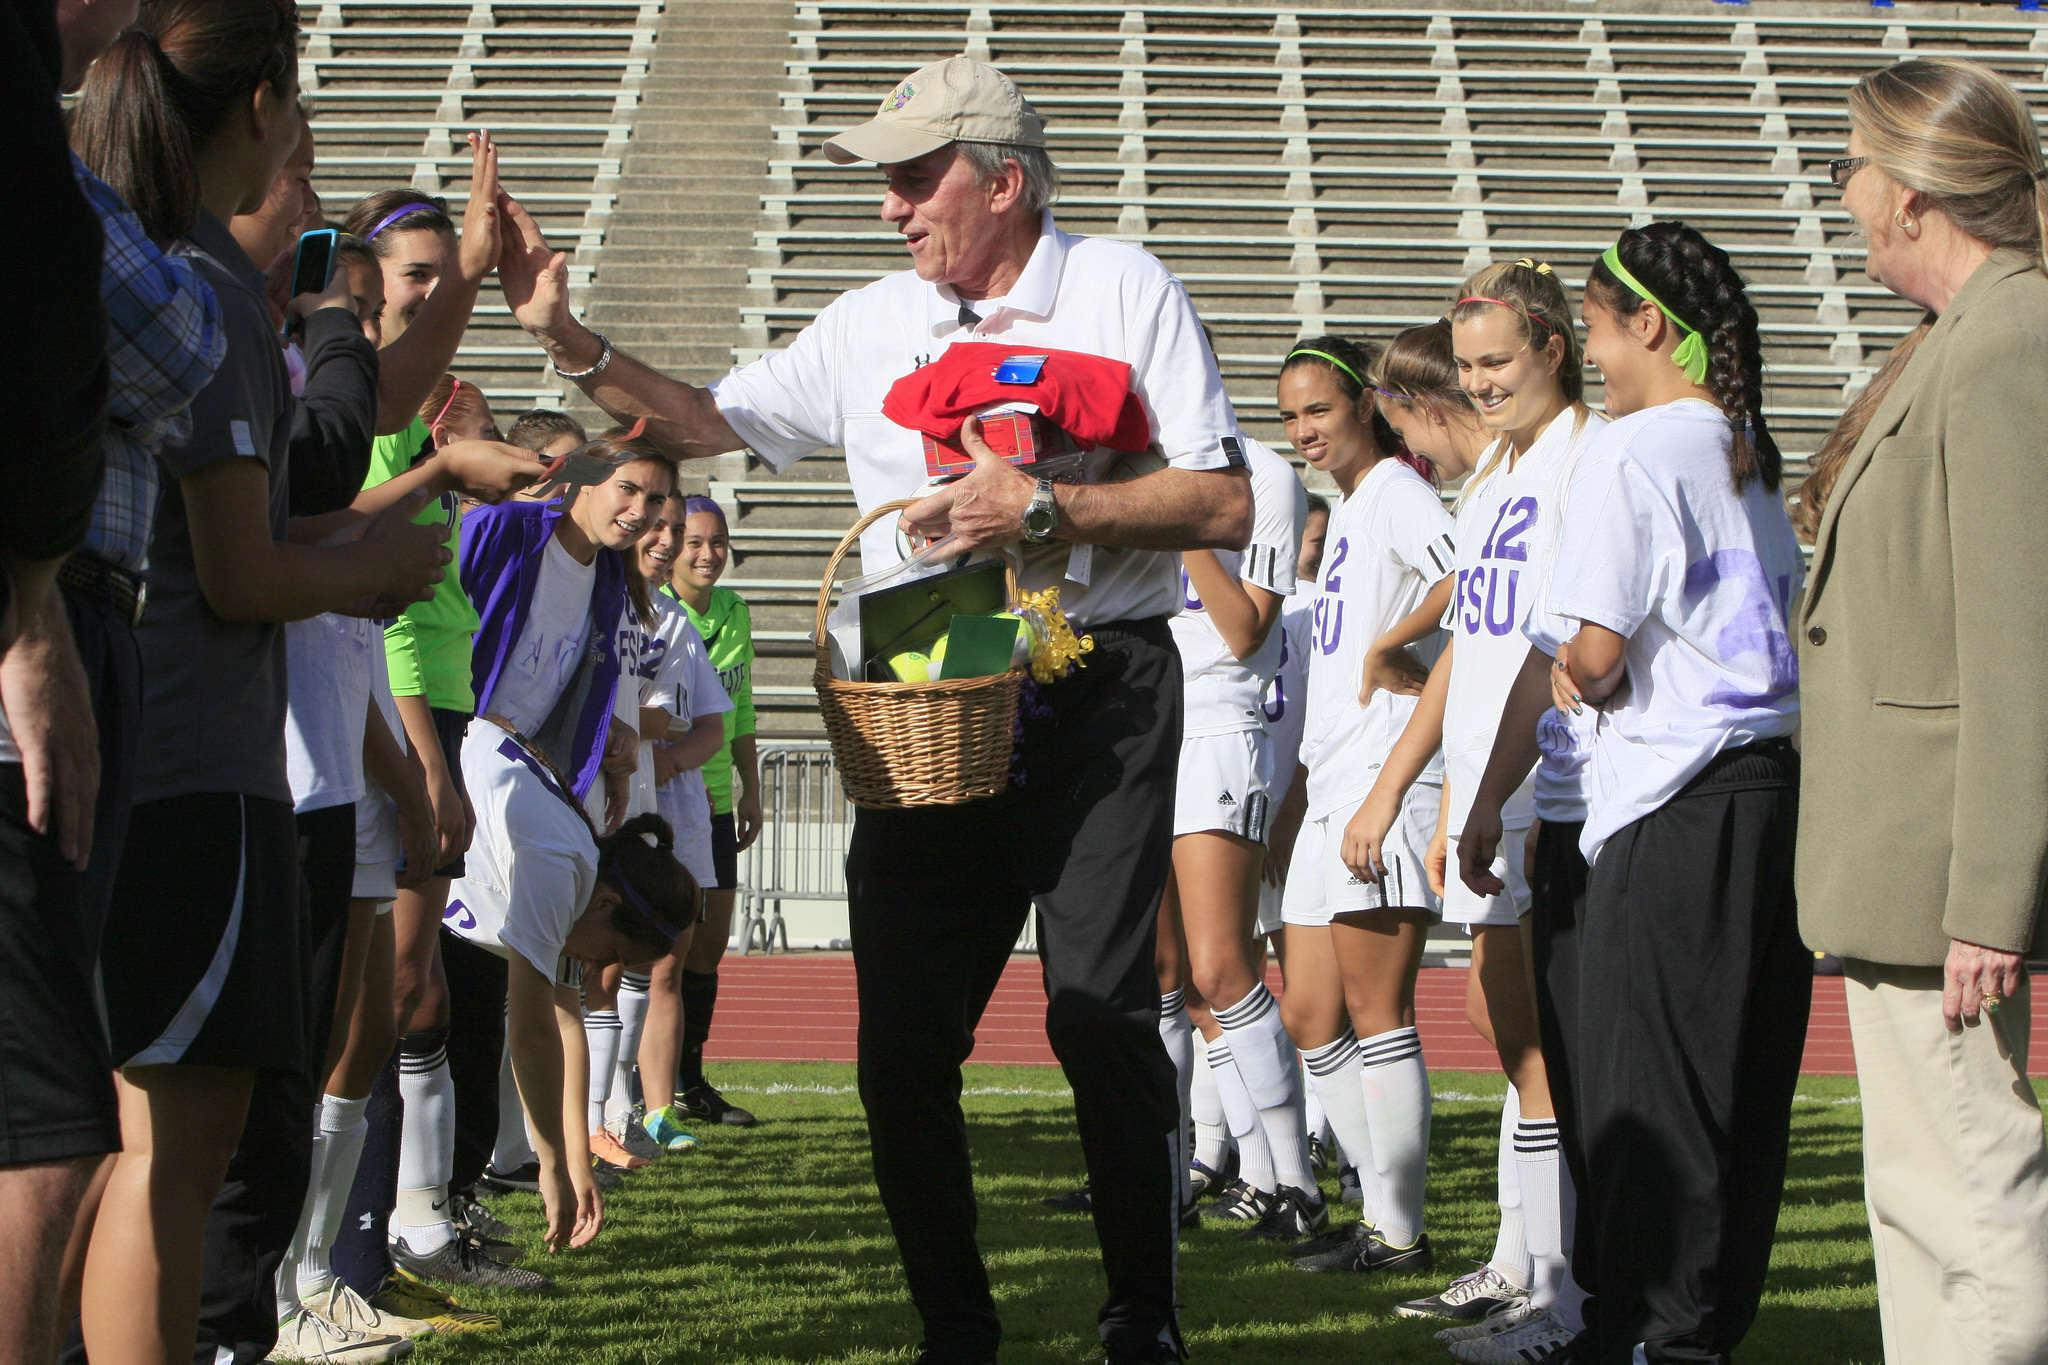 Jack Hyde high-fives a player from the girls soccer team, while he holds presents the team got for him. Coach of the women's soccer team at SF State, Jack Hyde, is retiring this season, so the team made Oct. 22 Coach Jack Hyde Day, right before the girls soccer team at Cox Stadium in San Francisco, Calif., on October 22, 2014.